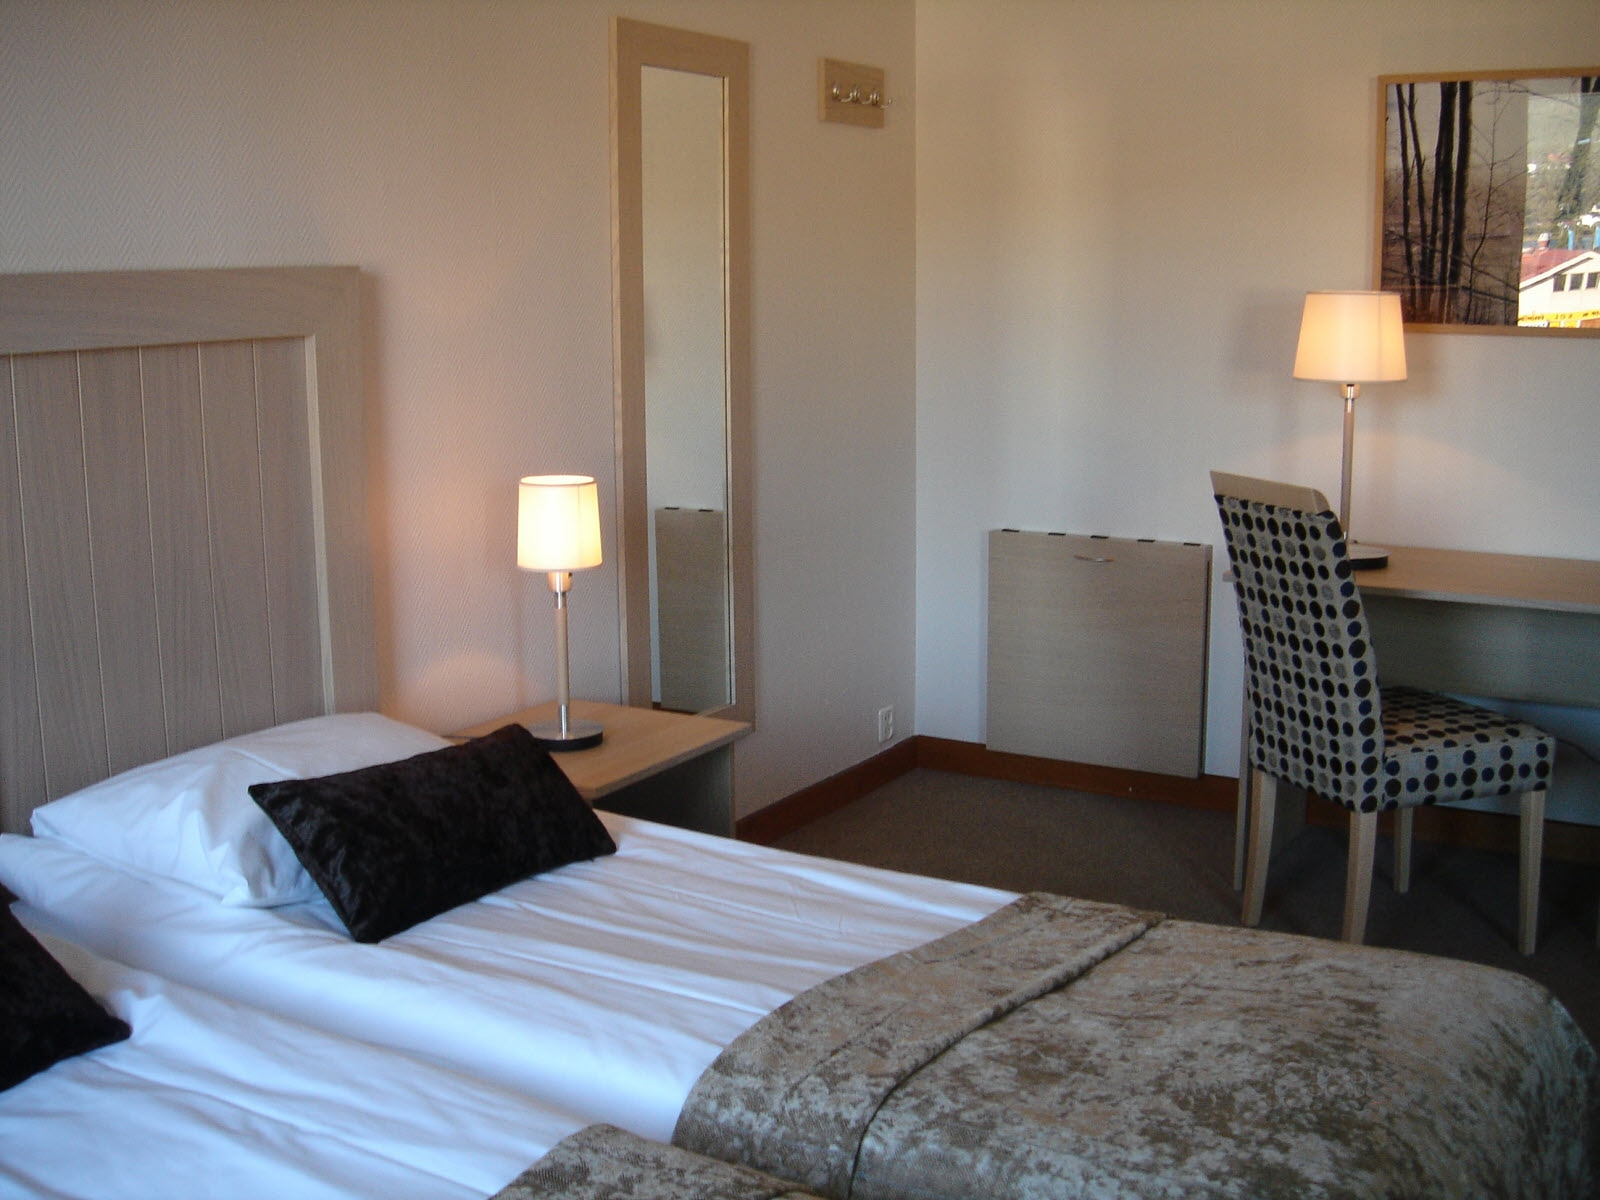 Fauske Hotell, room